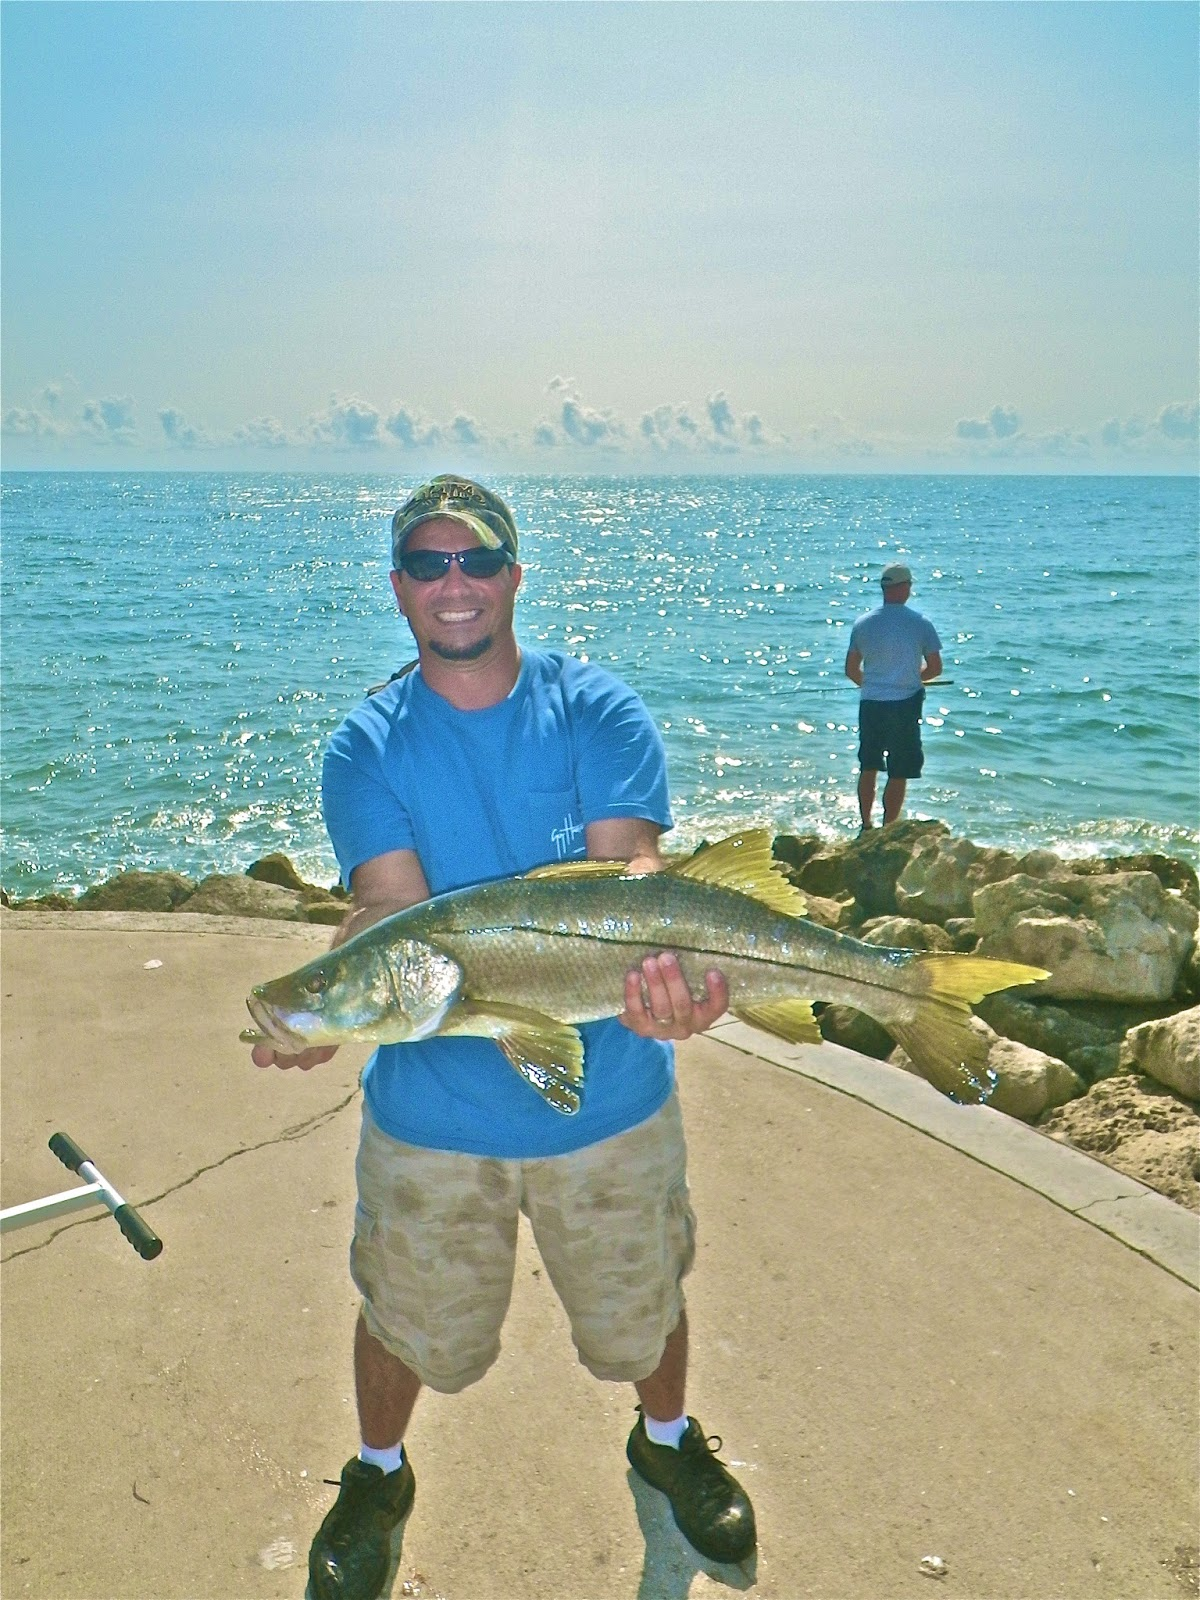 On foot angler from whites tackle stuart ft pierce for Fort pierce fishing